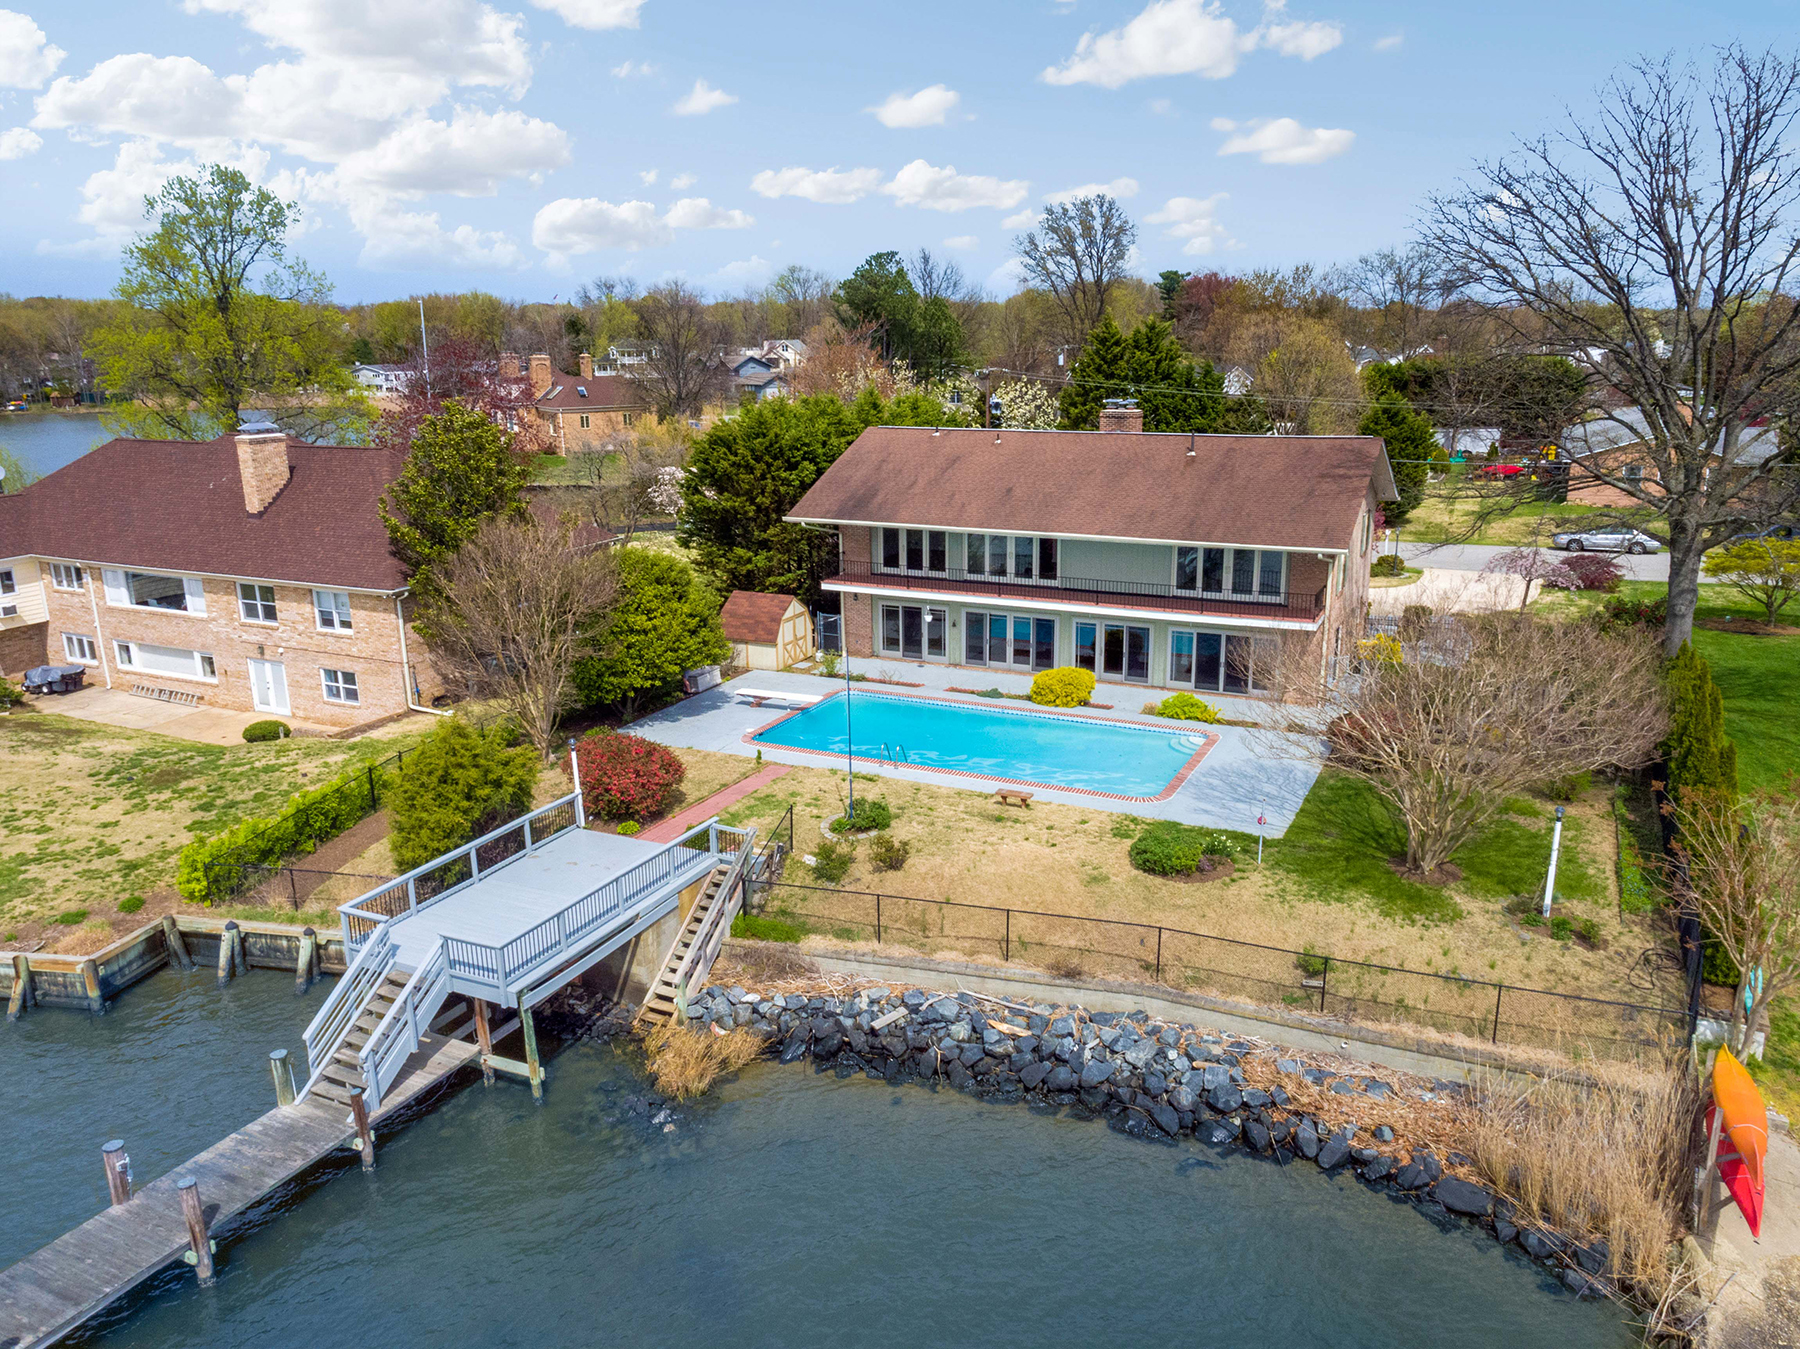 6f21f75a67bb17 622 Riverside Drive in Hillsmere Estates has the sunset water views you  dream about! Situated on .38 acres overlooking the South River